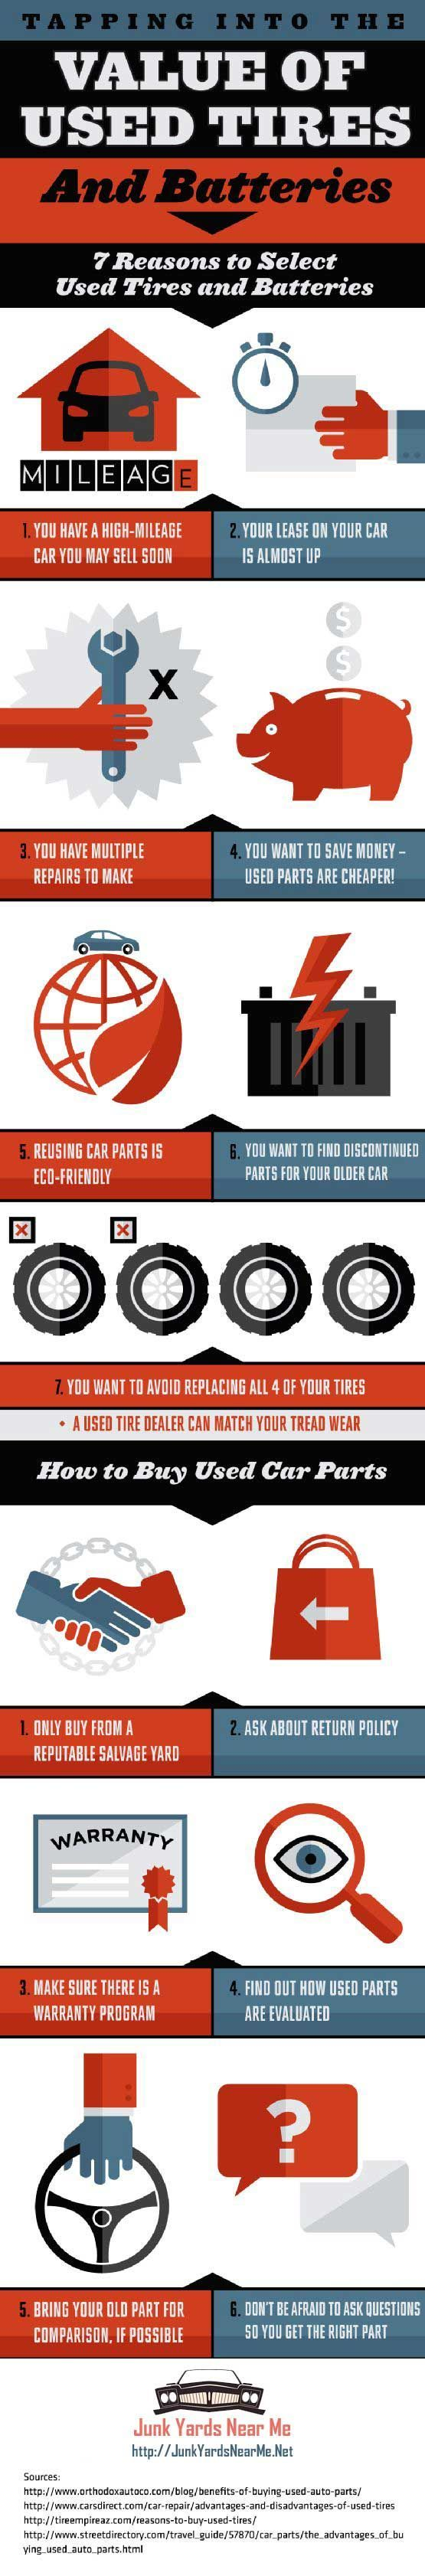 It's Time to say goodbye to your junk car, Sell Your Junk